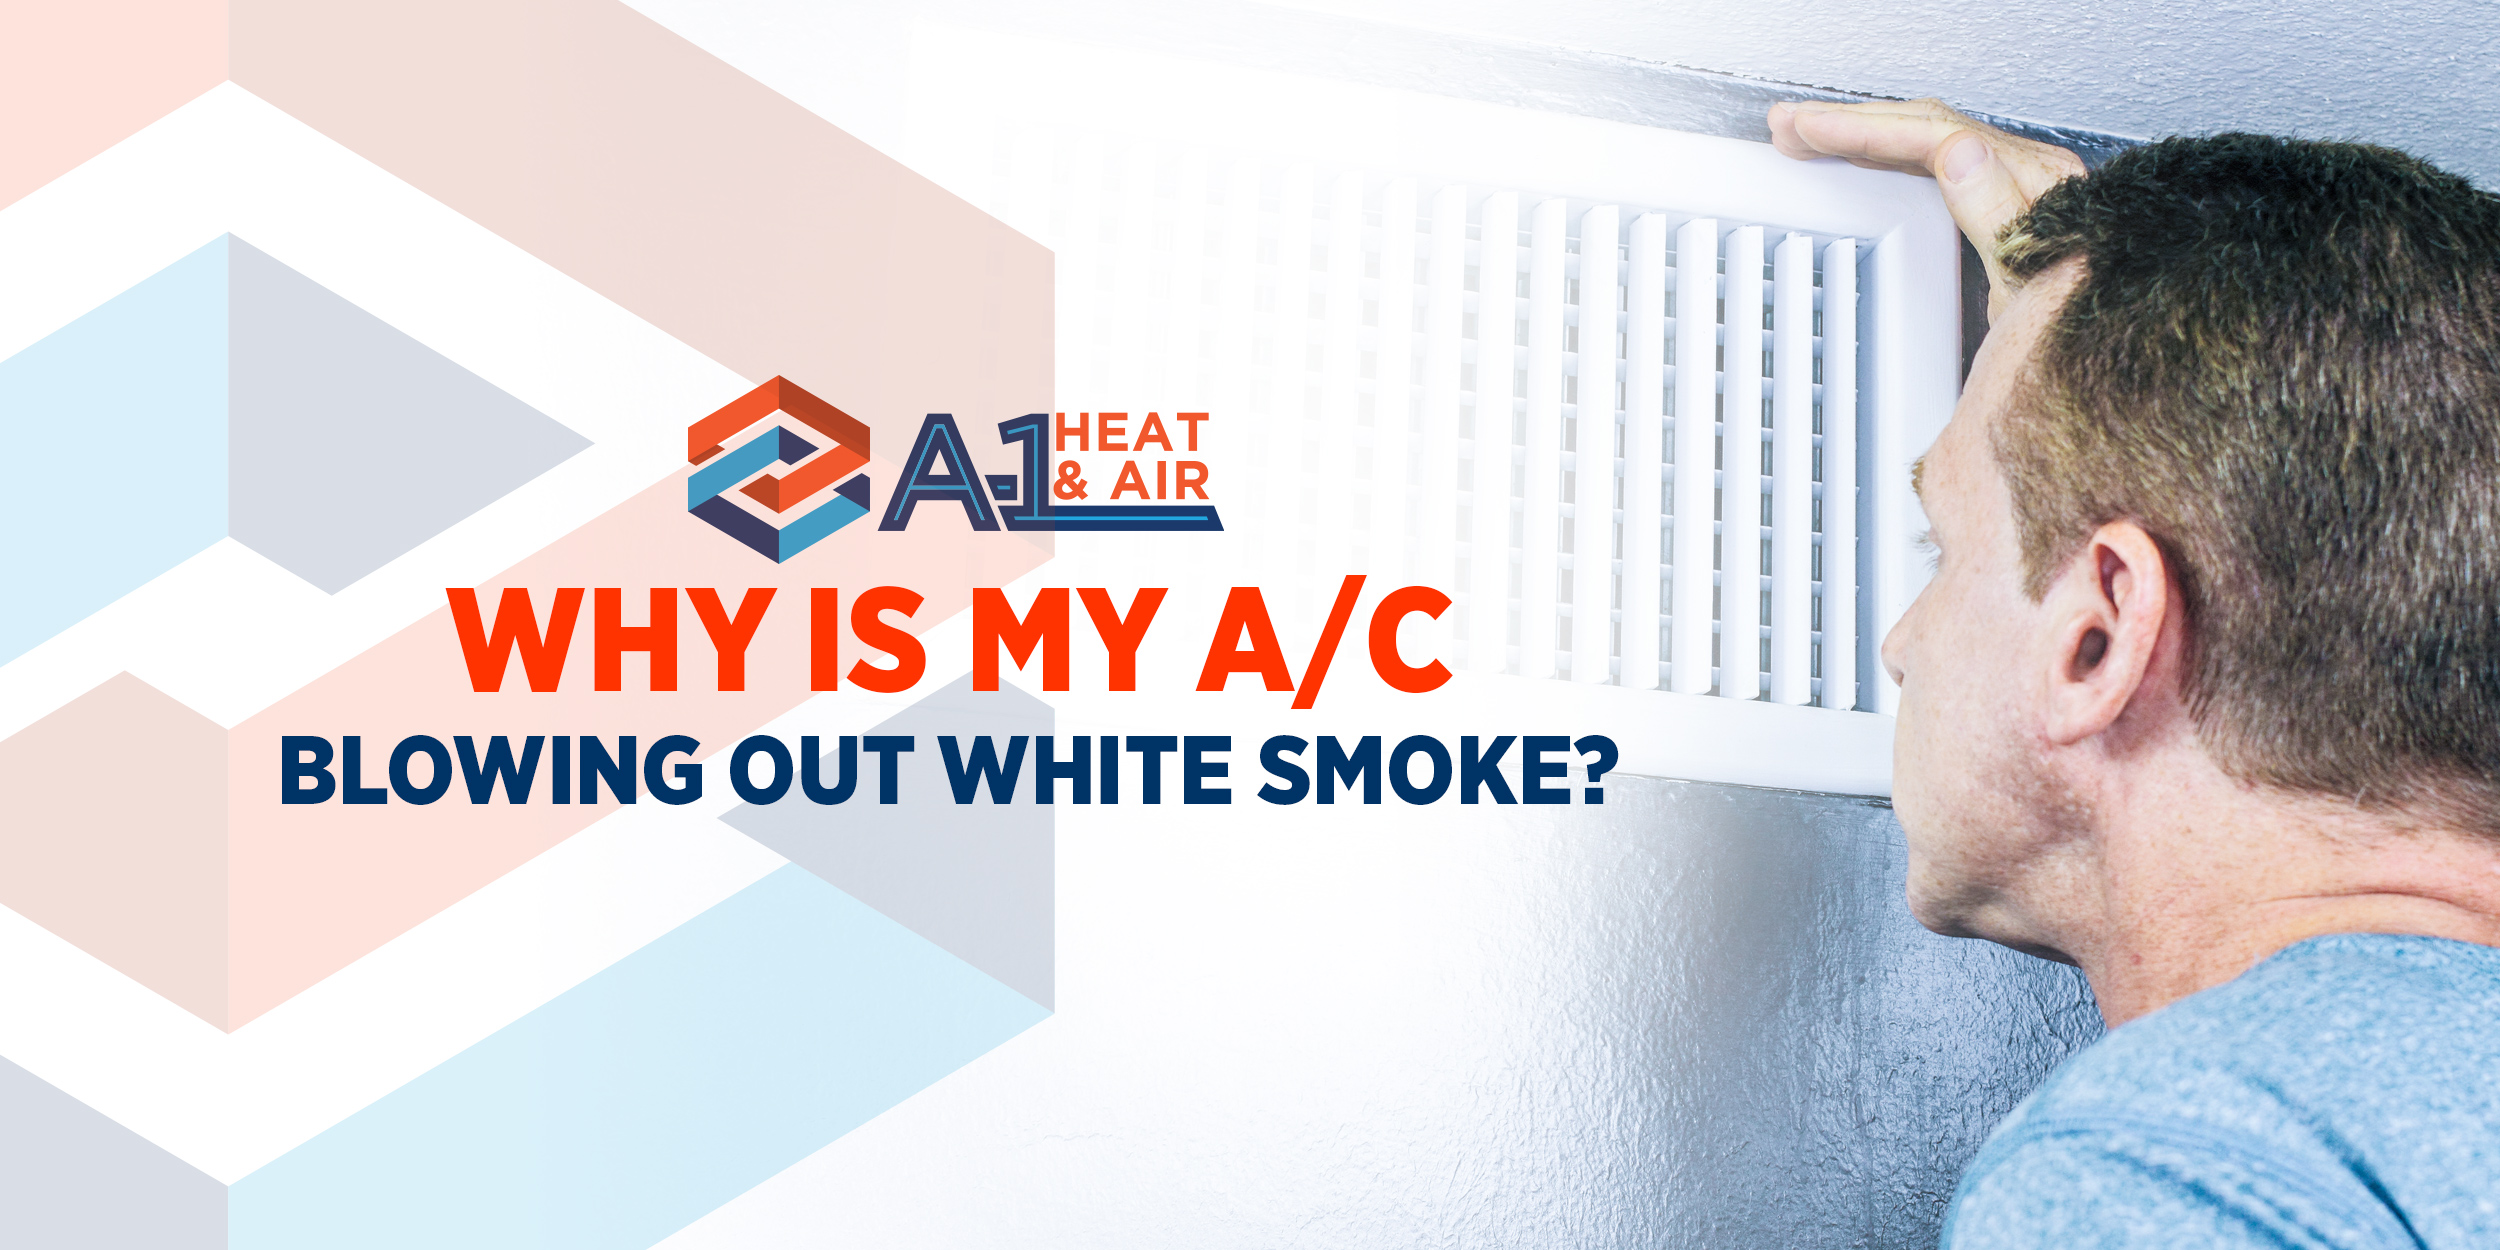 Why Is My A/C Blowing Out White Smoke? | A-1 Heat & Air